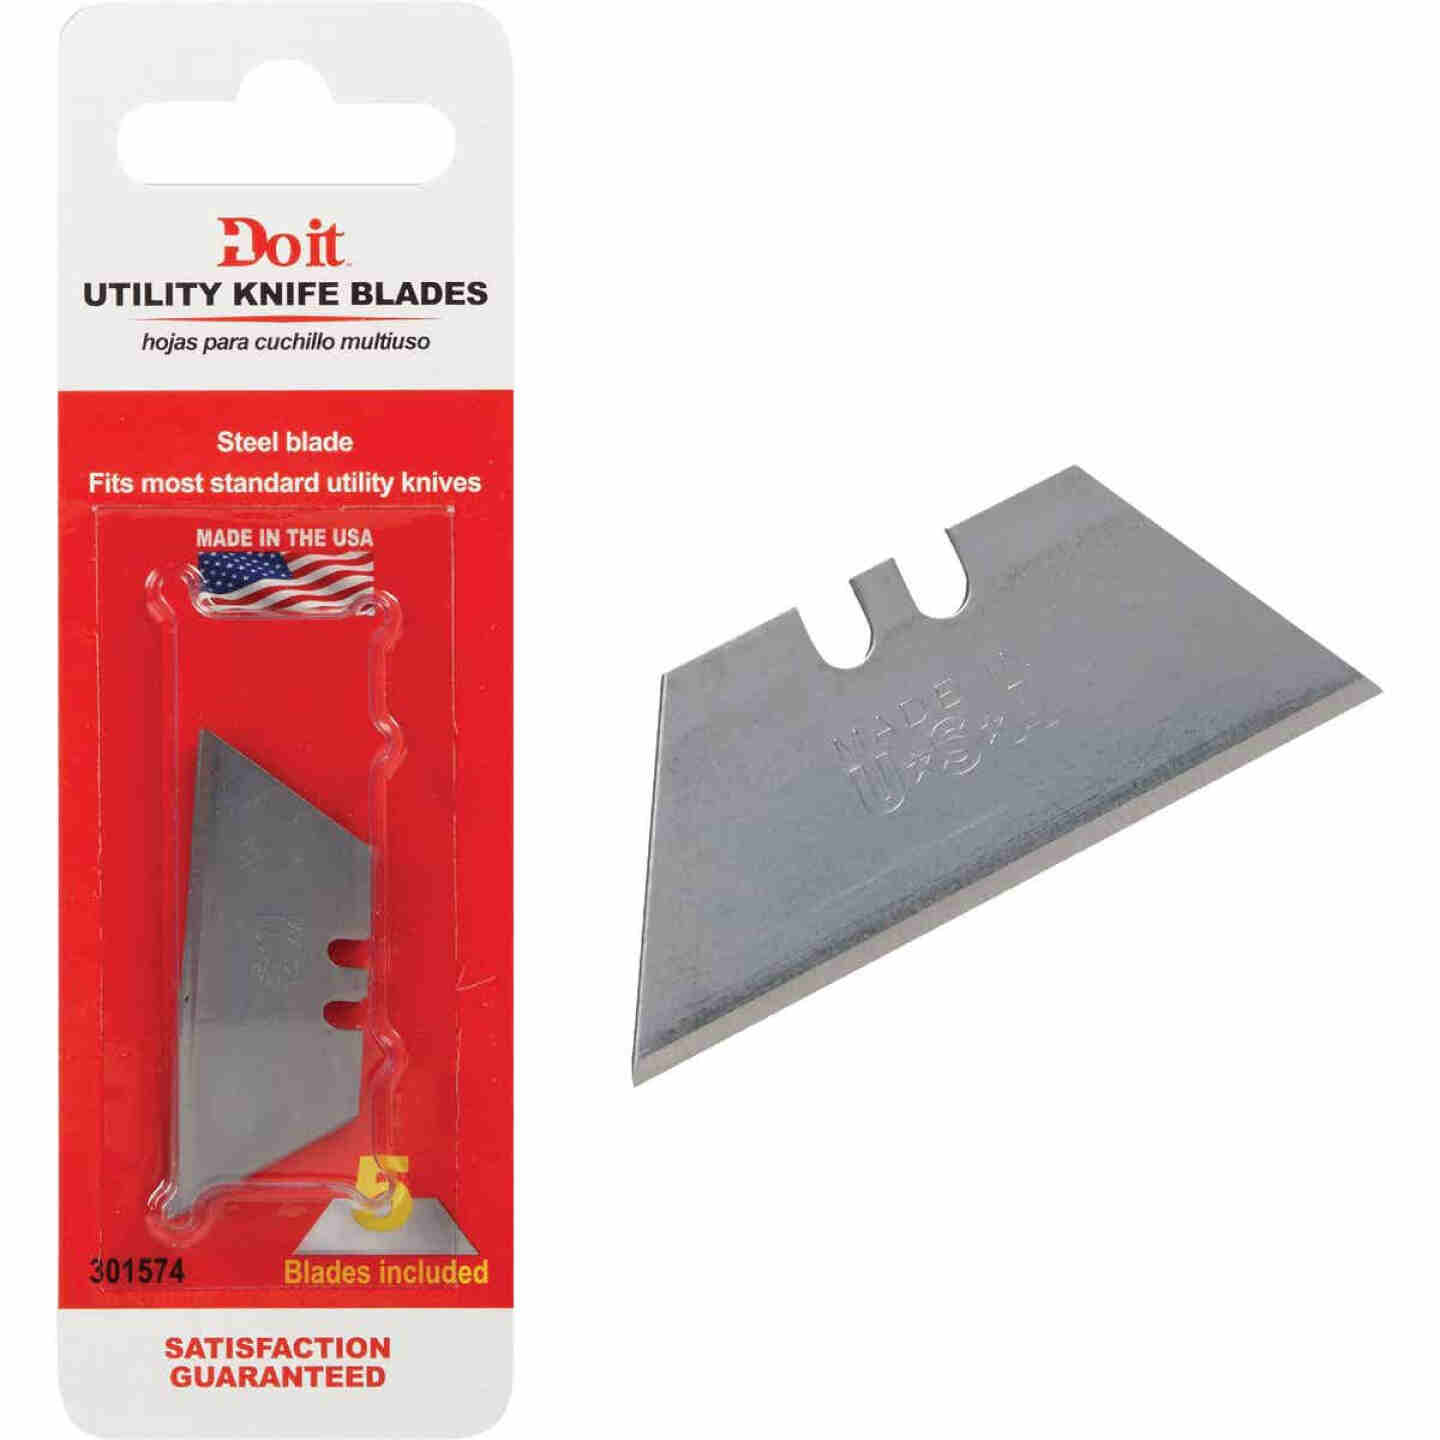 Do it 2-Point 2-3/8 In. Utility Knife Blade (5-Pack) Image 1